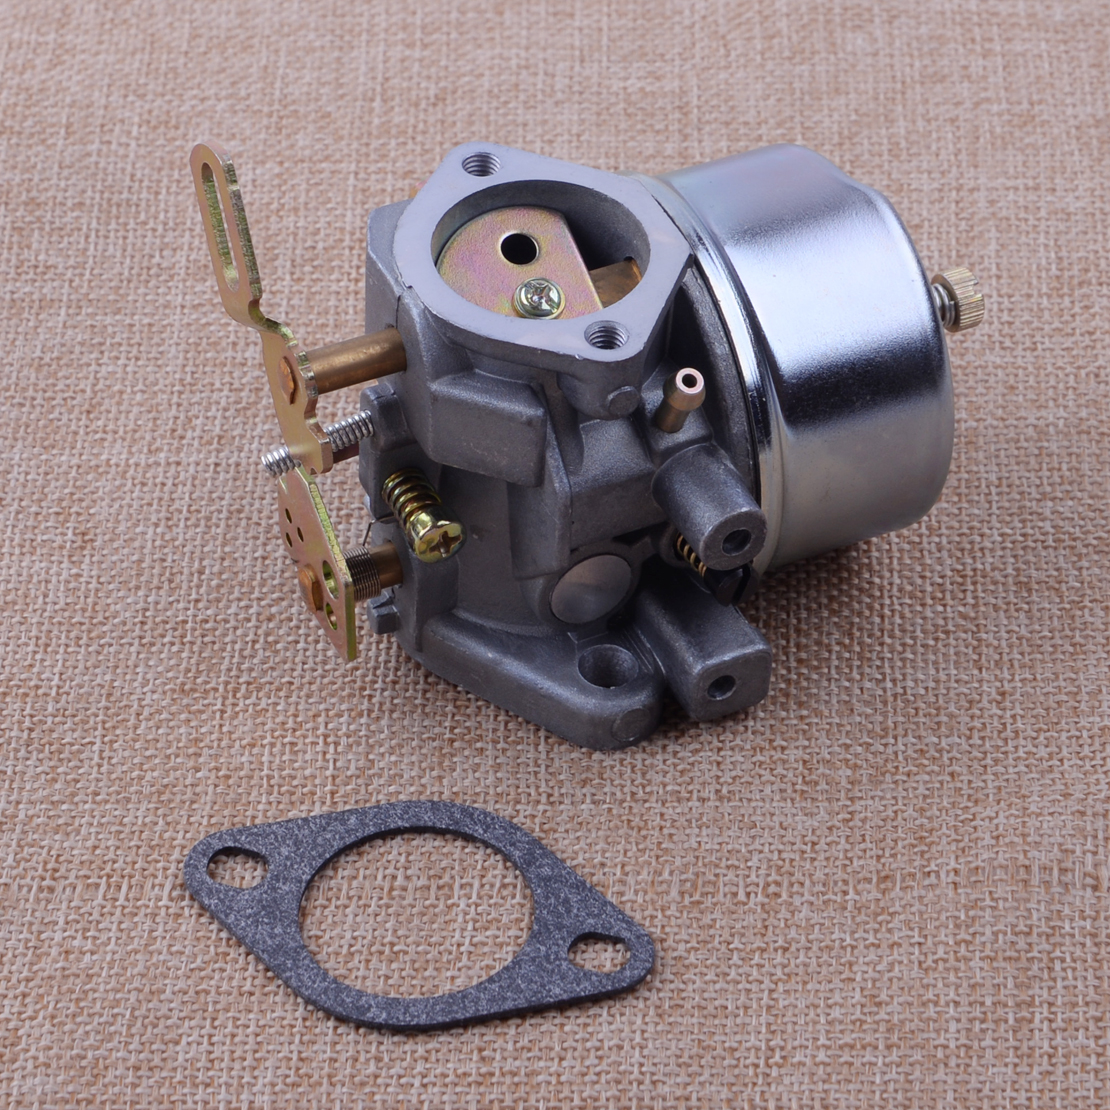 LETAOSK Silver Steel Carburetor Carb Fit For Tecumseh 632111 632334A HM70 HM80 HMSK80 HMSK90 Engines